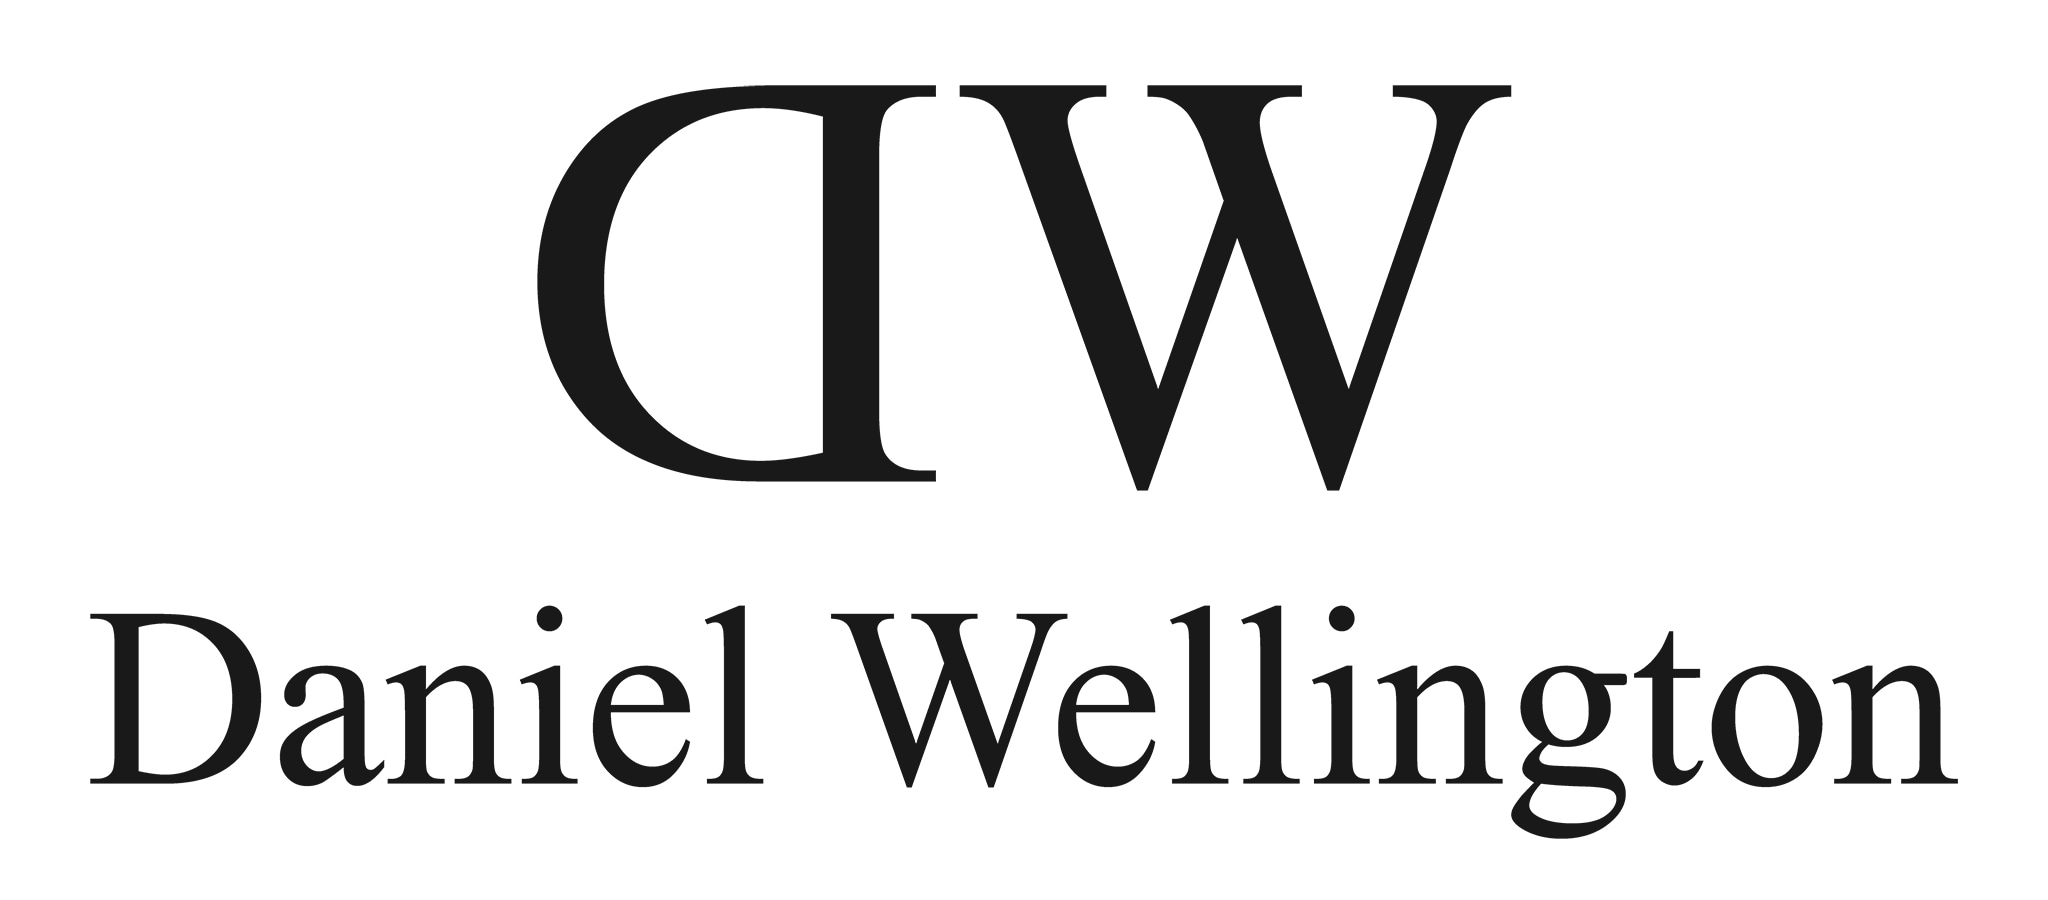 Daniel Wellington coupon codes